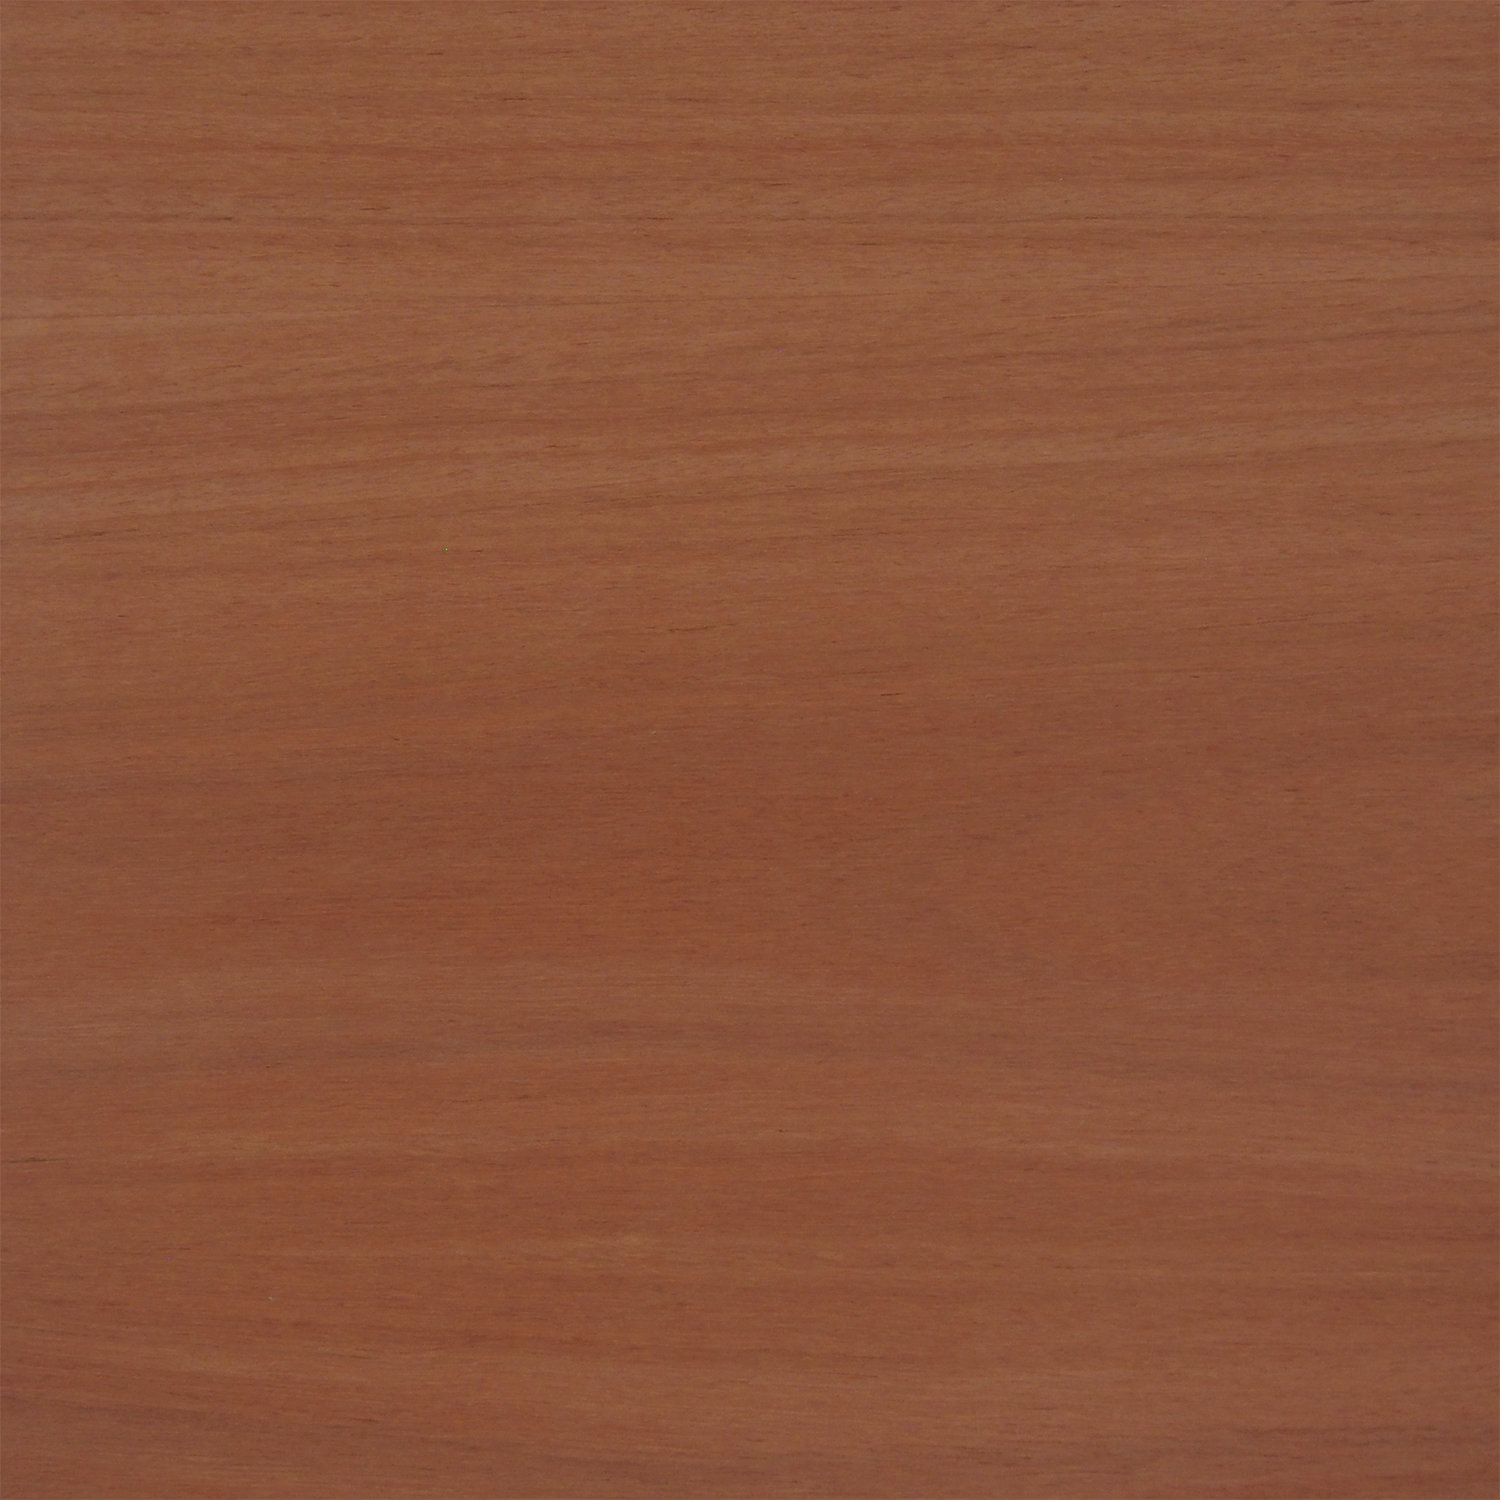 Jarrah  Available in 1.5mm & 2.5mm  Maximum size: 600mm x 1200mm